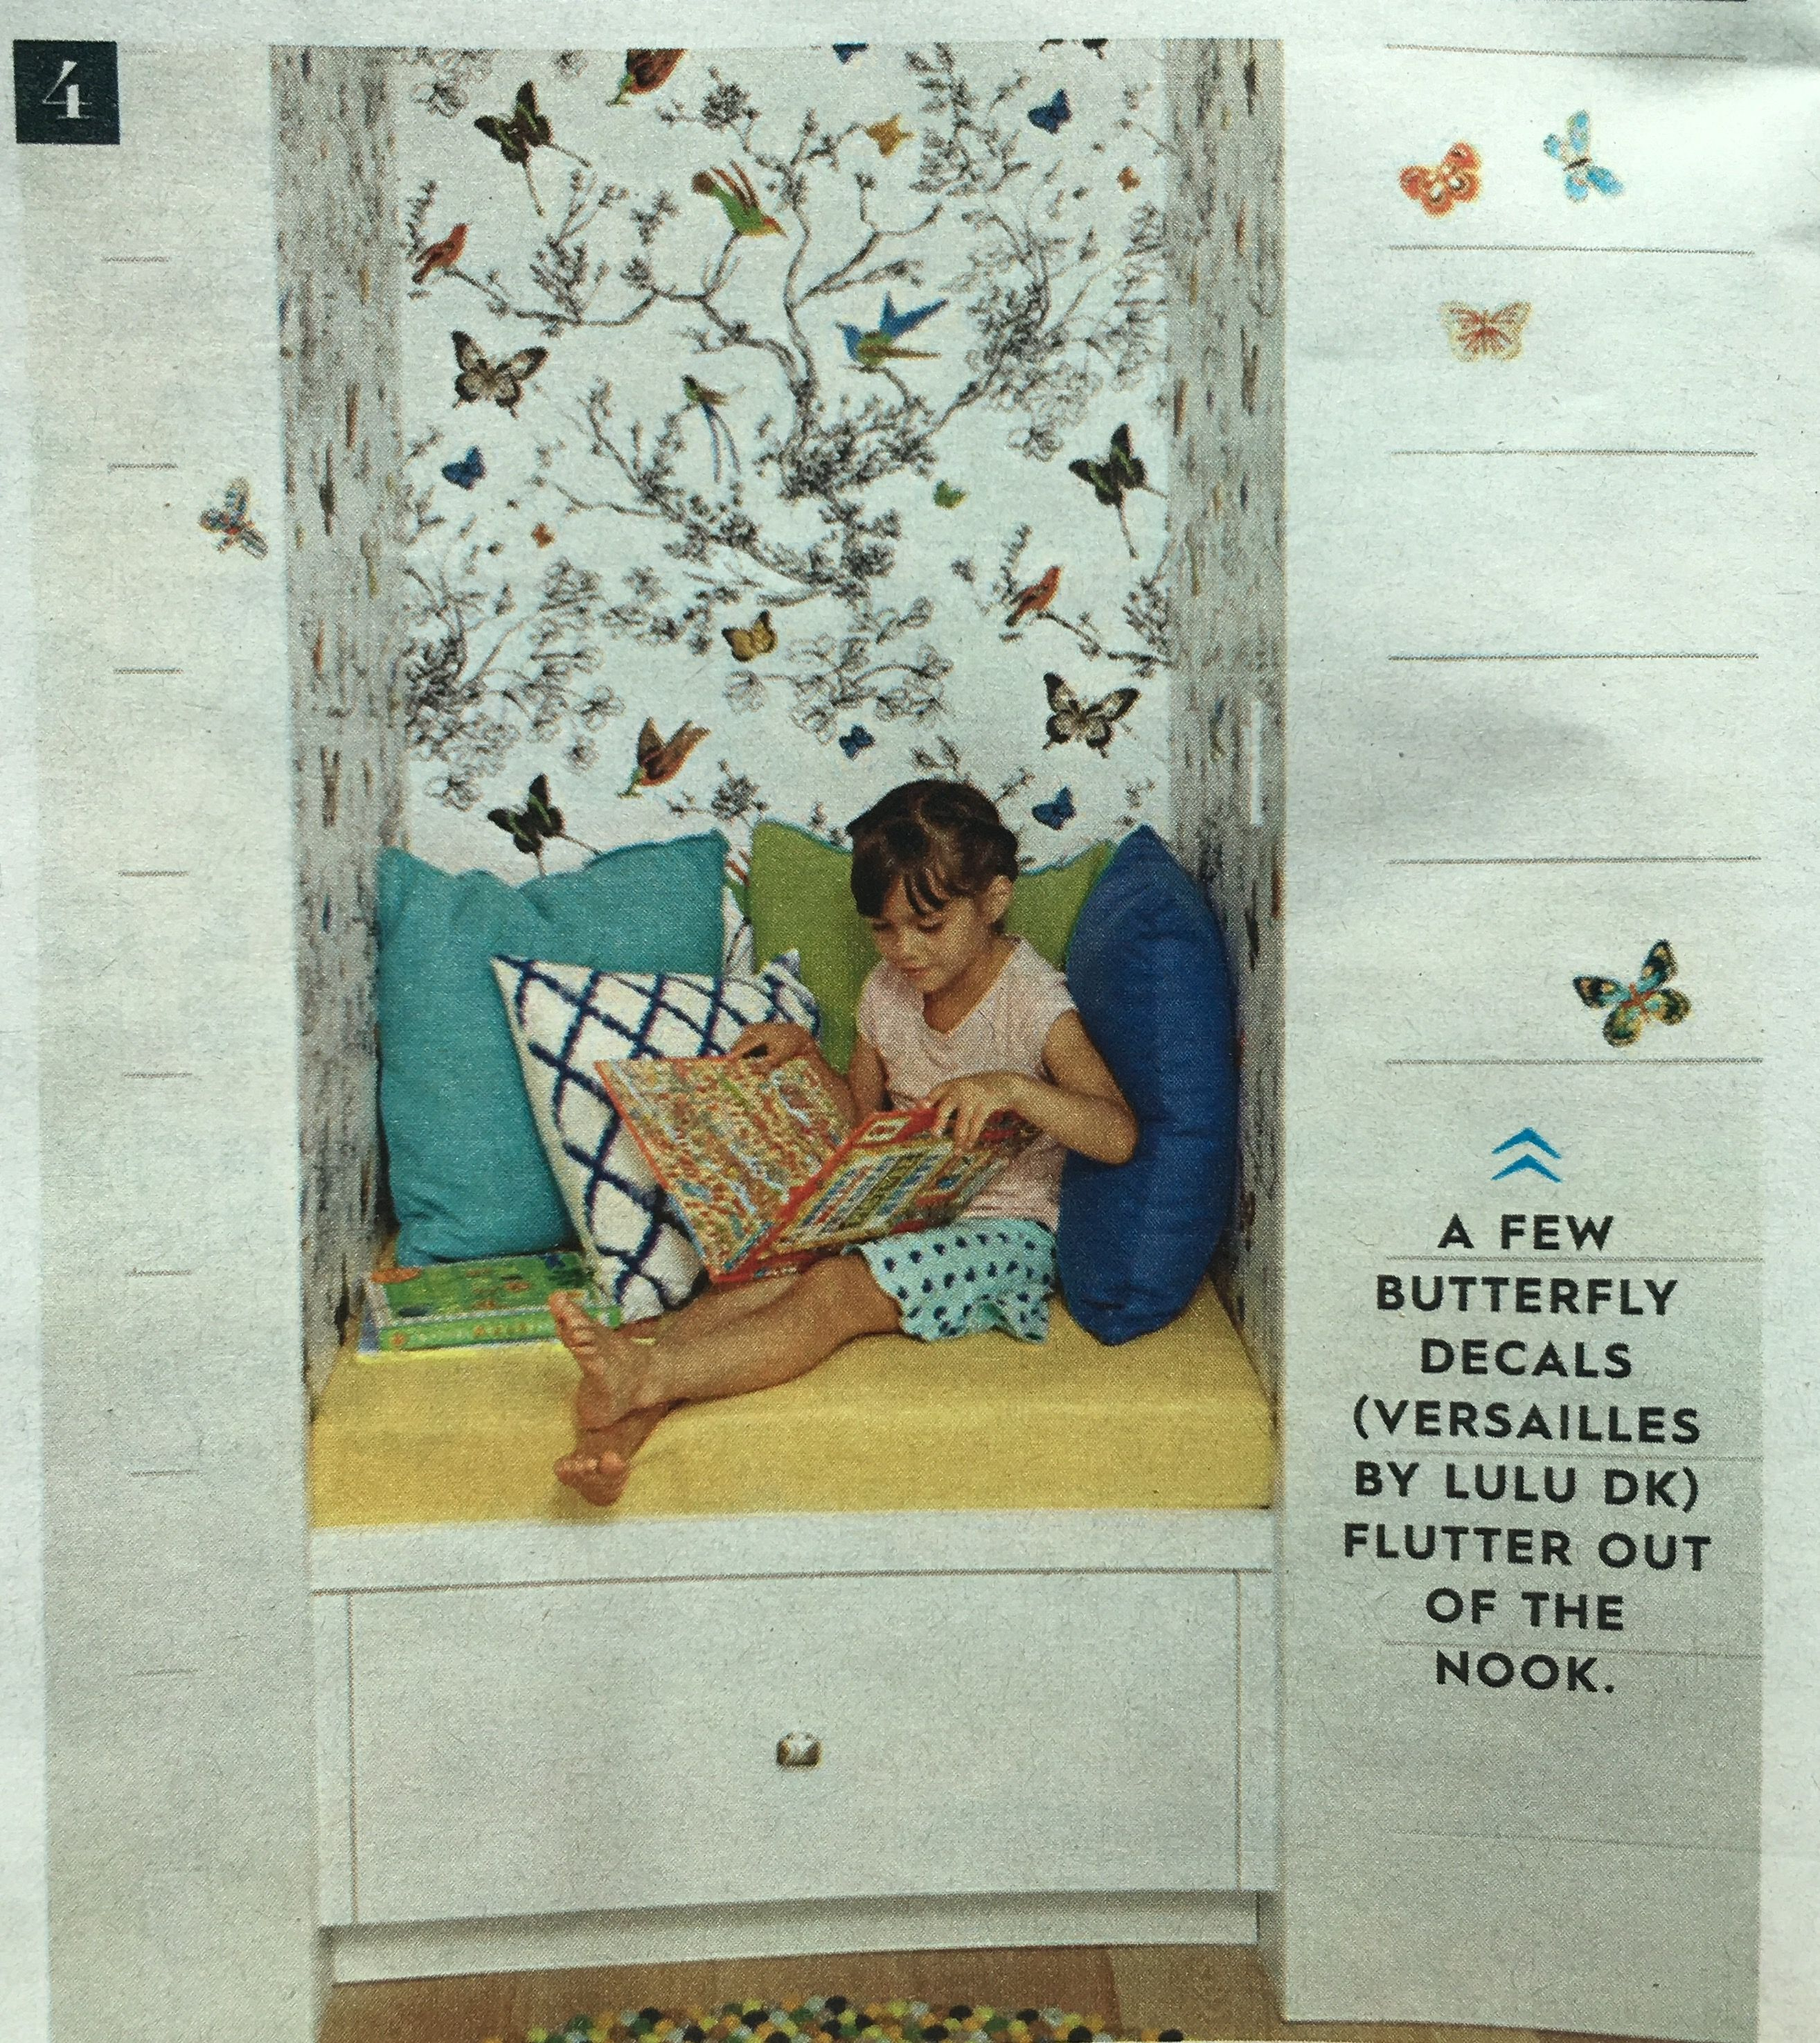 Schumacher wallpaper birds & butterflies reading nook